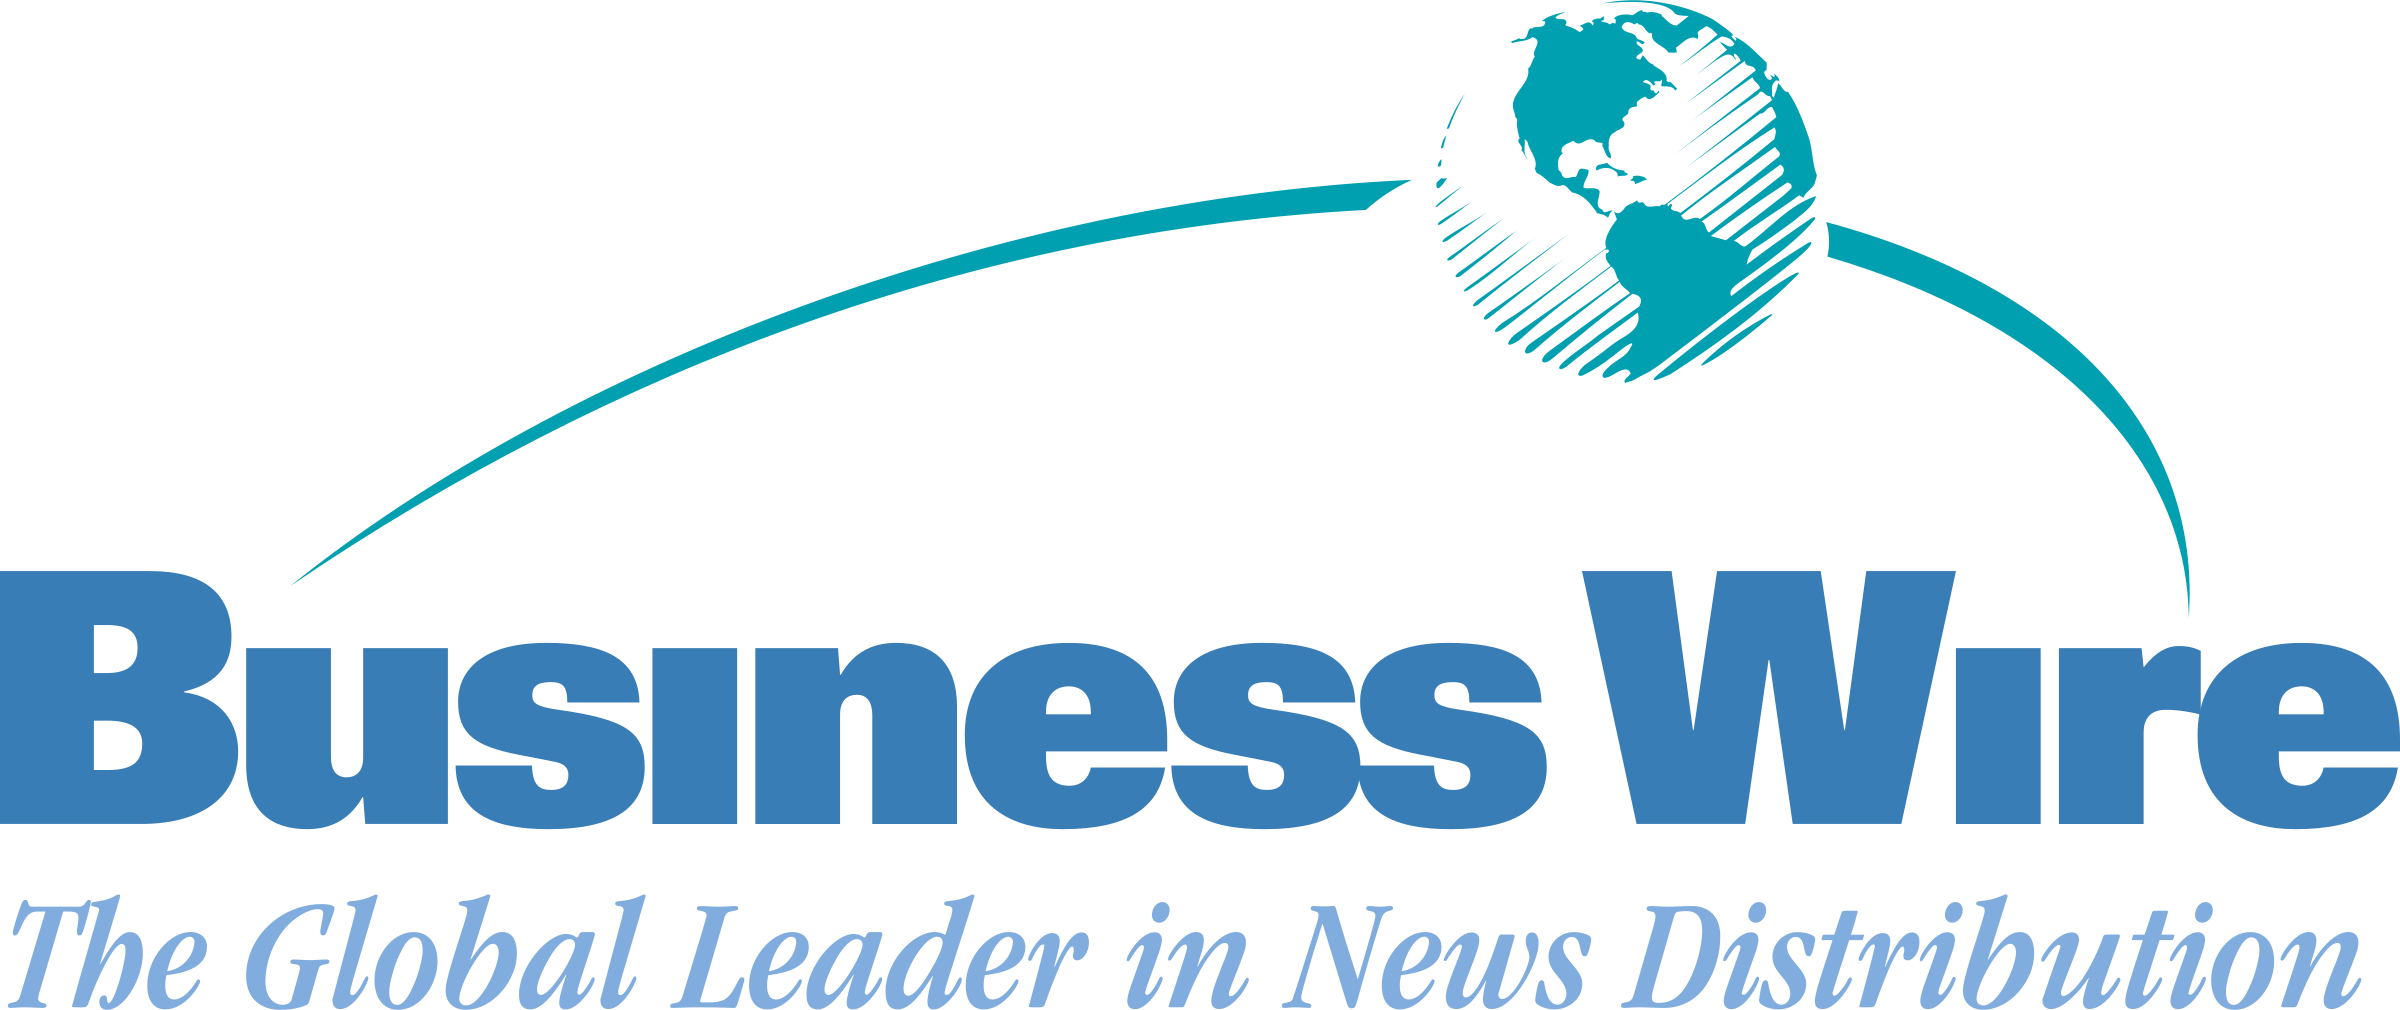 Leader vector big. Business wire logo png